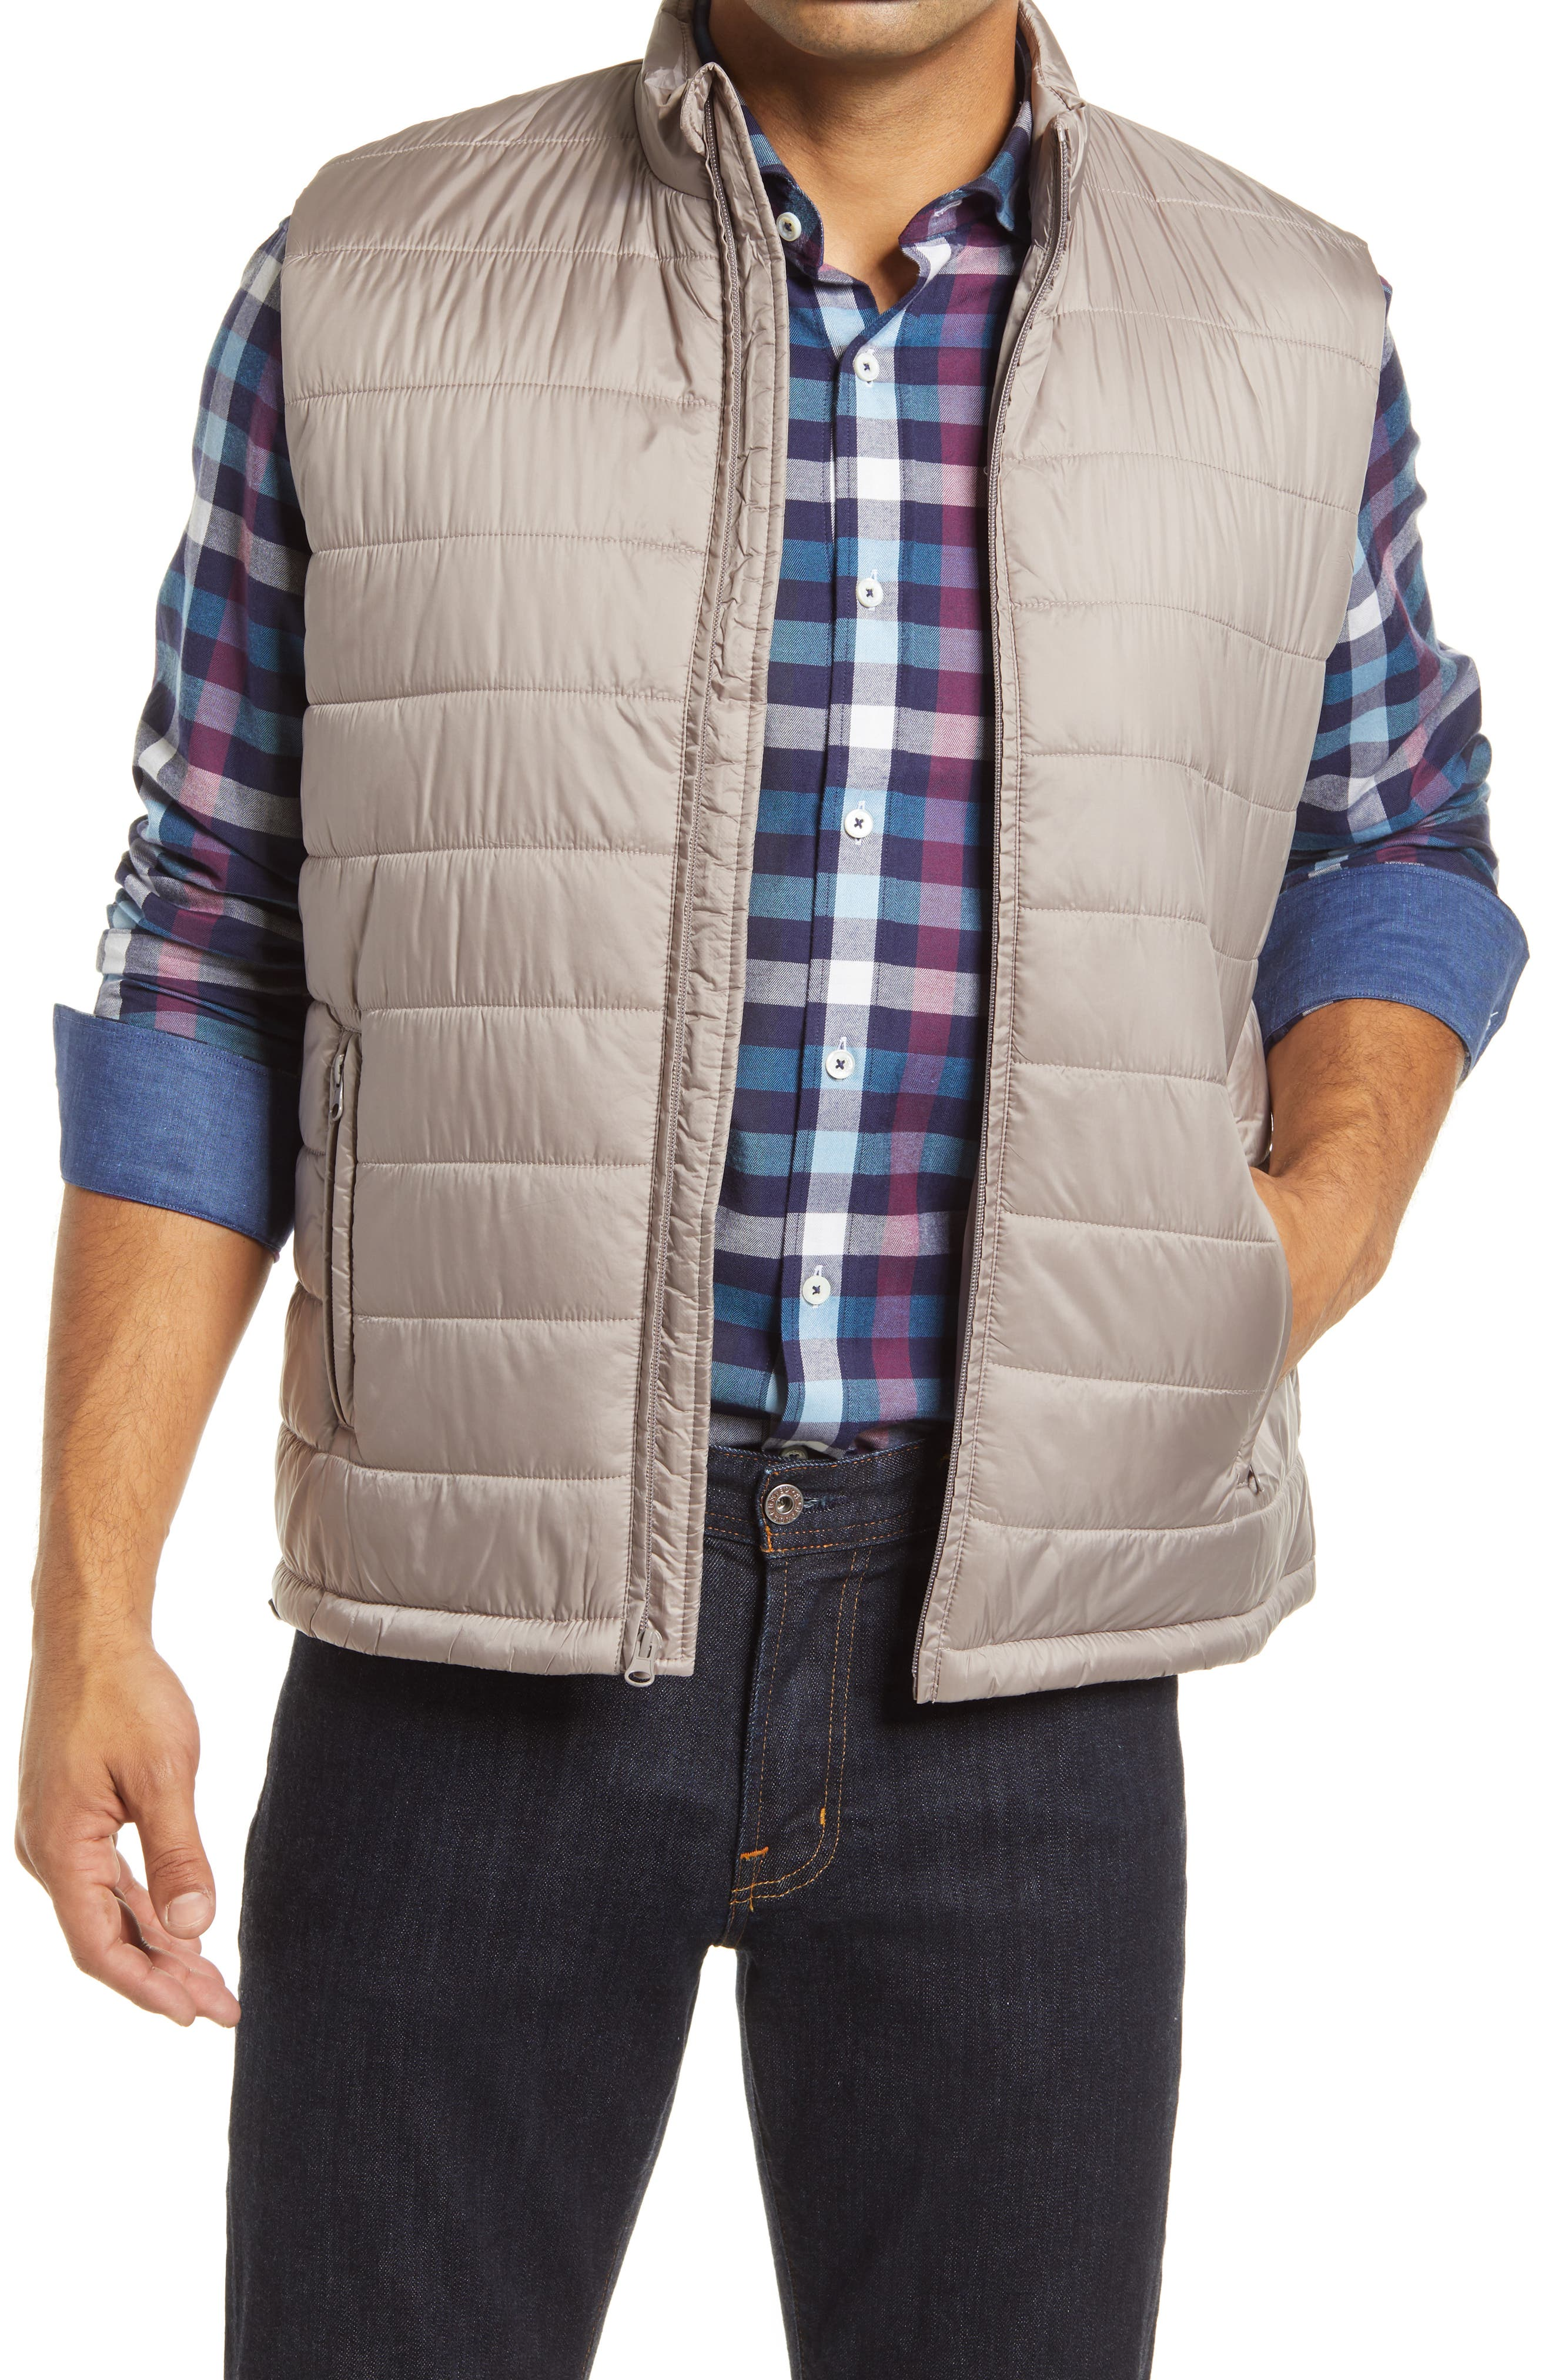 Bold channel quilting touches up a vest crafted with a drawcord hem for a customizable fit. Style Name: Bugatchi Quilted Vest. Style Number: 6129641. Available in stores.